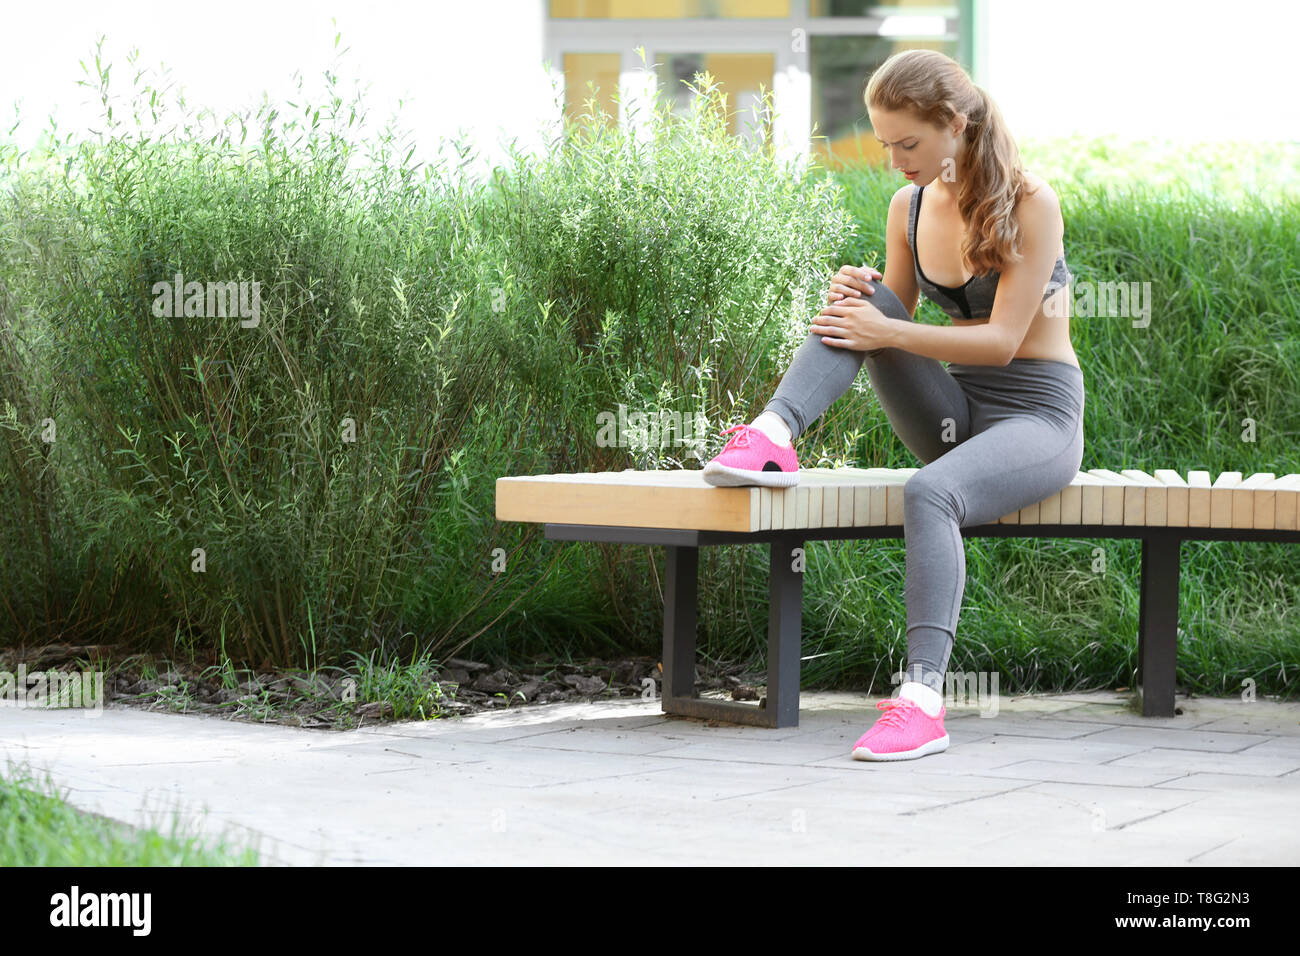 Sporty young woman suffering from knee pain while sitting on wooden bench in park - Stock Image